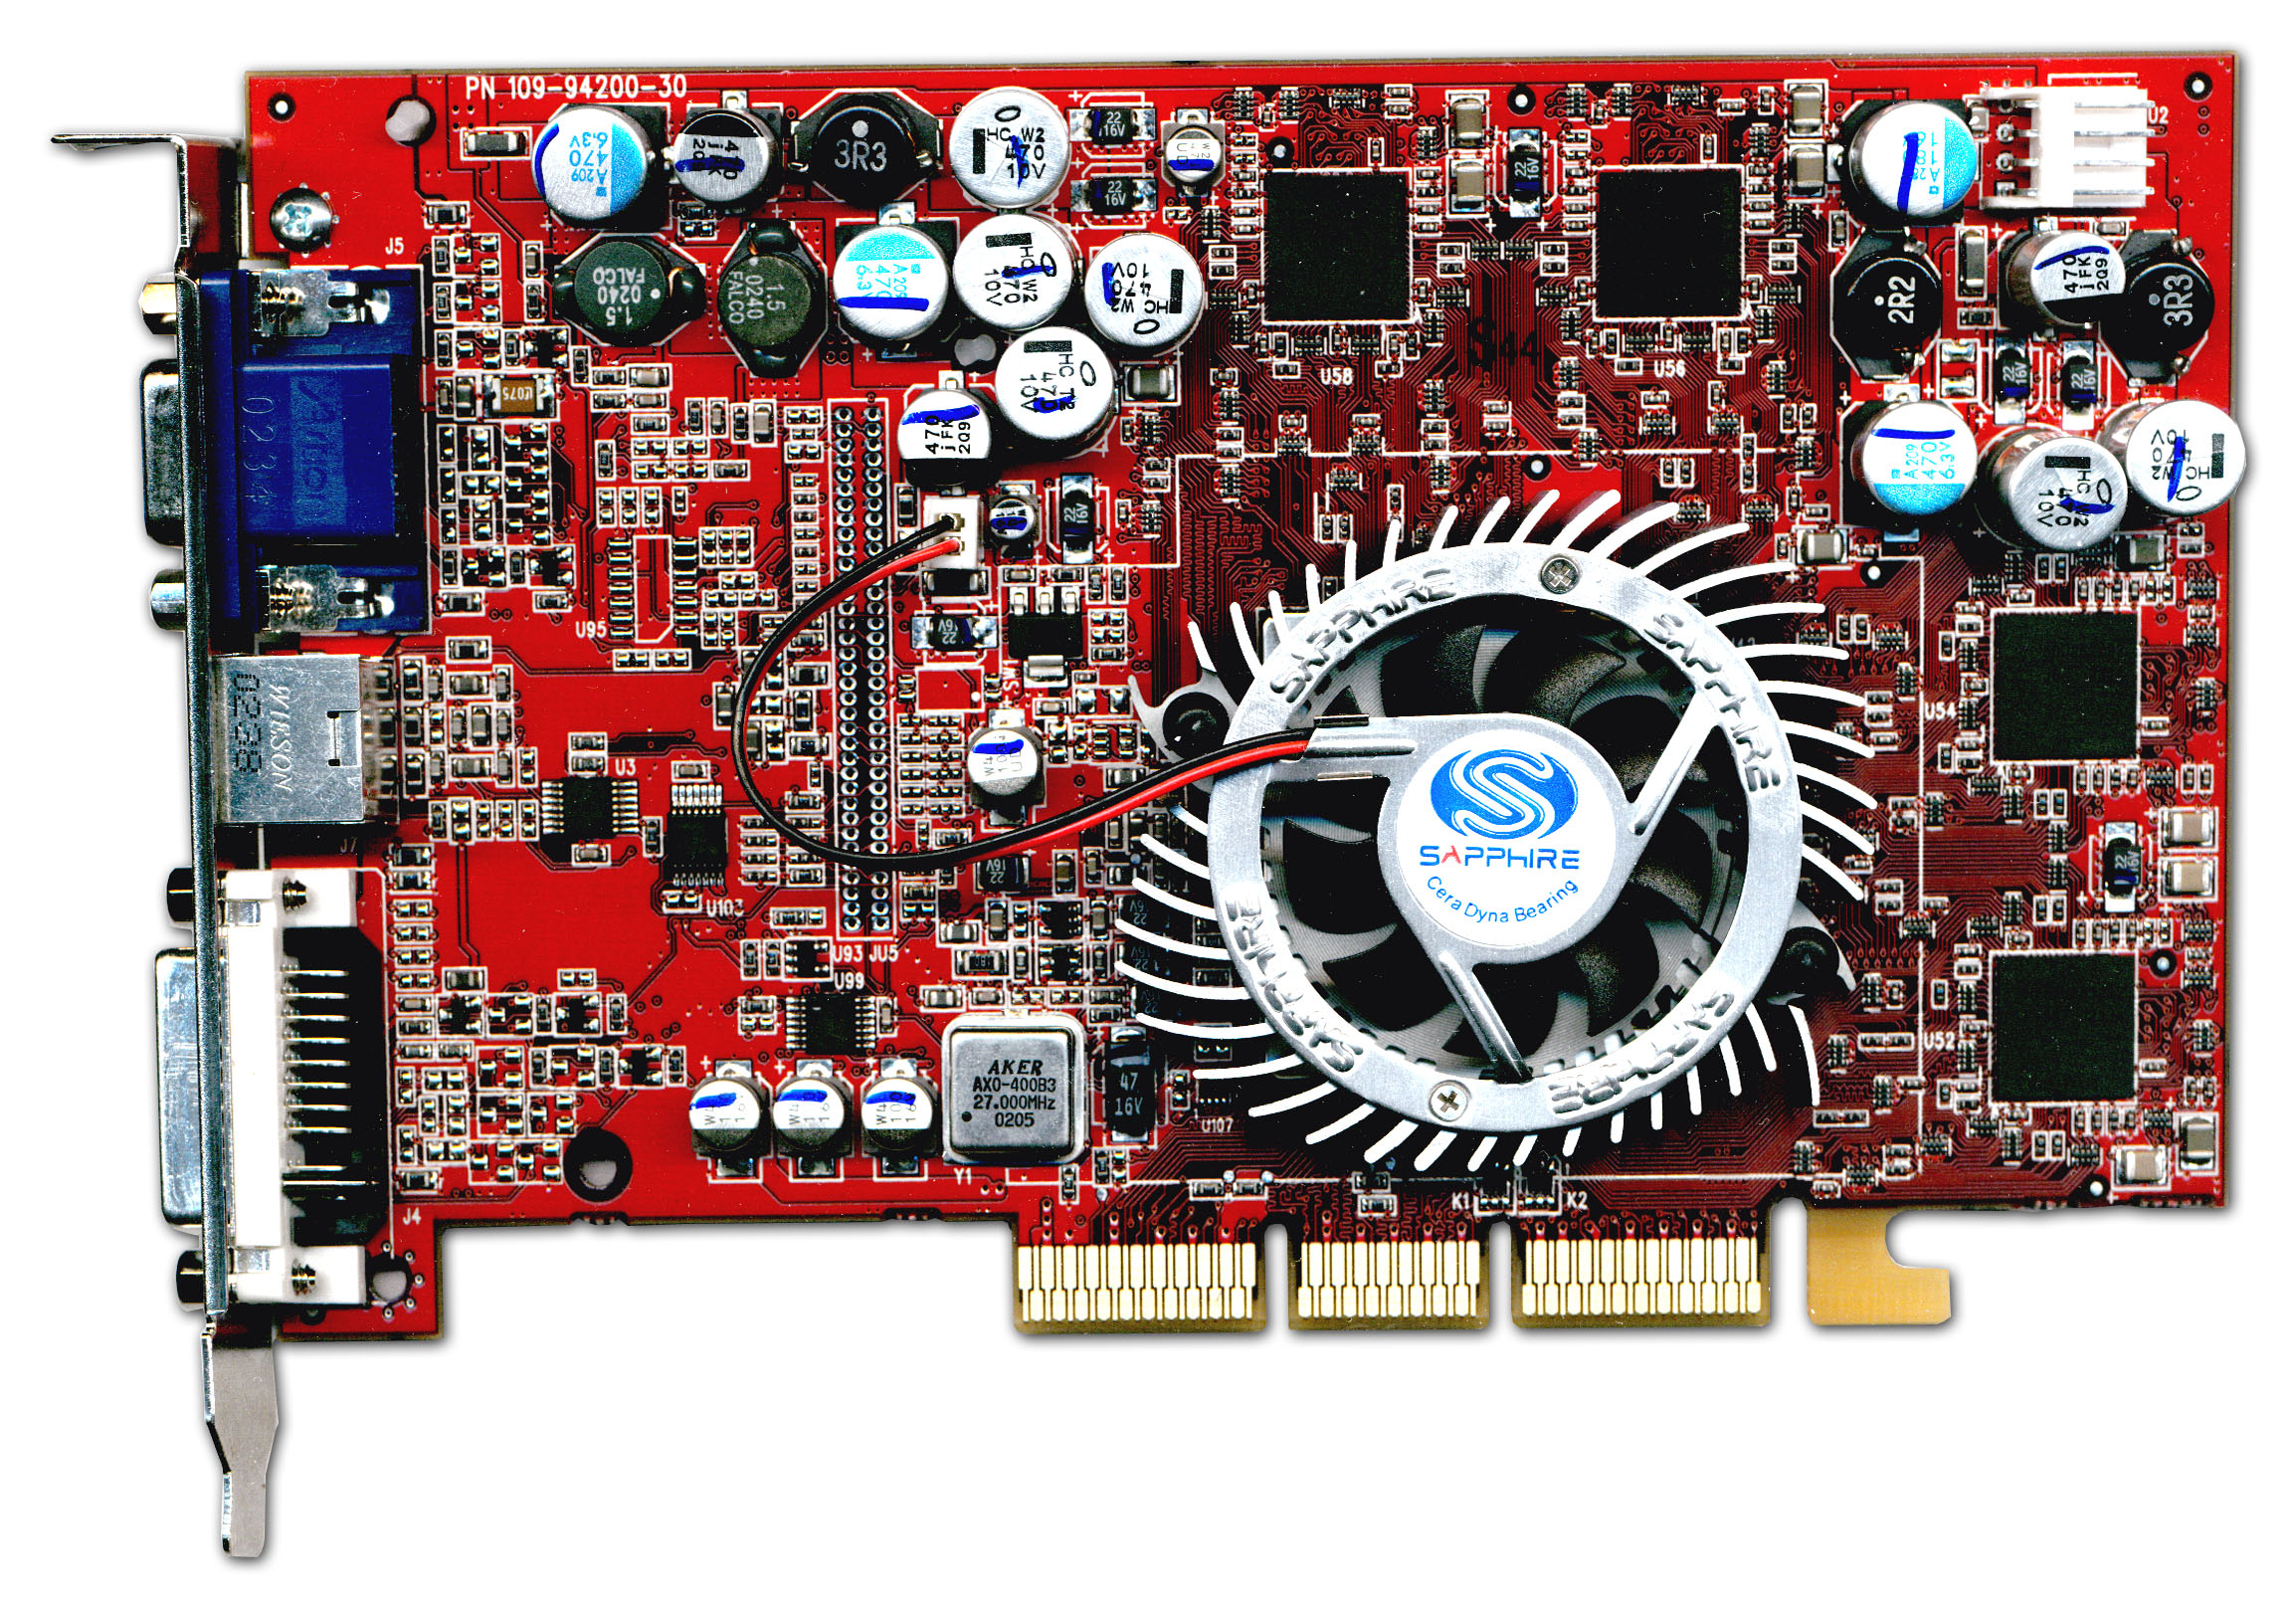 AMD RADEON 9500 DRIVER FOR WINDOWS